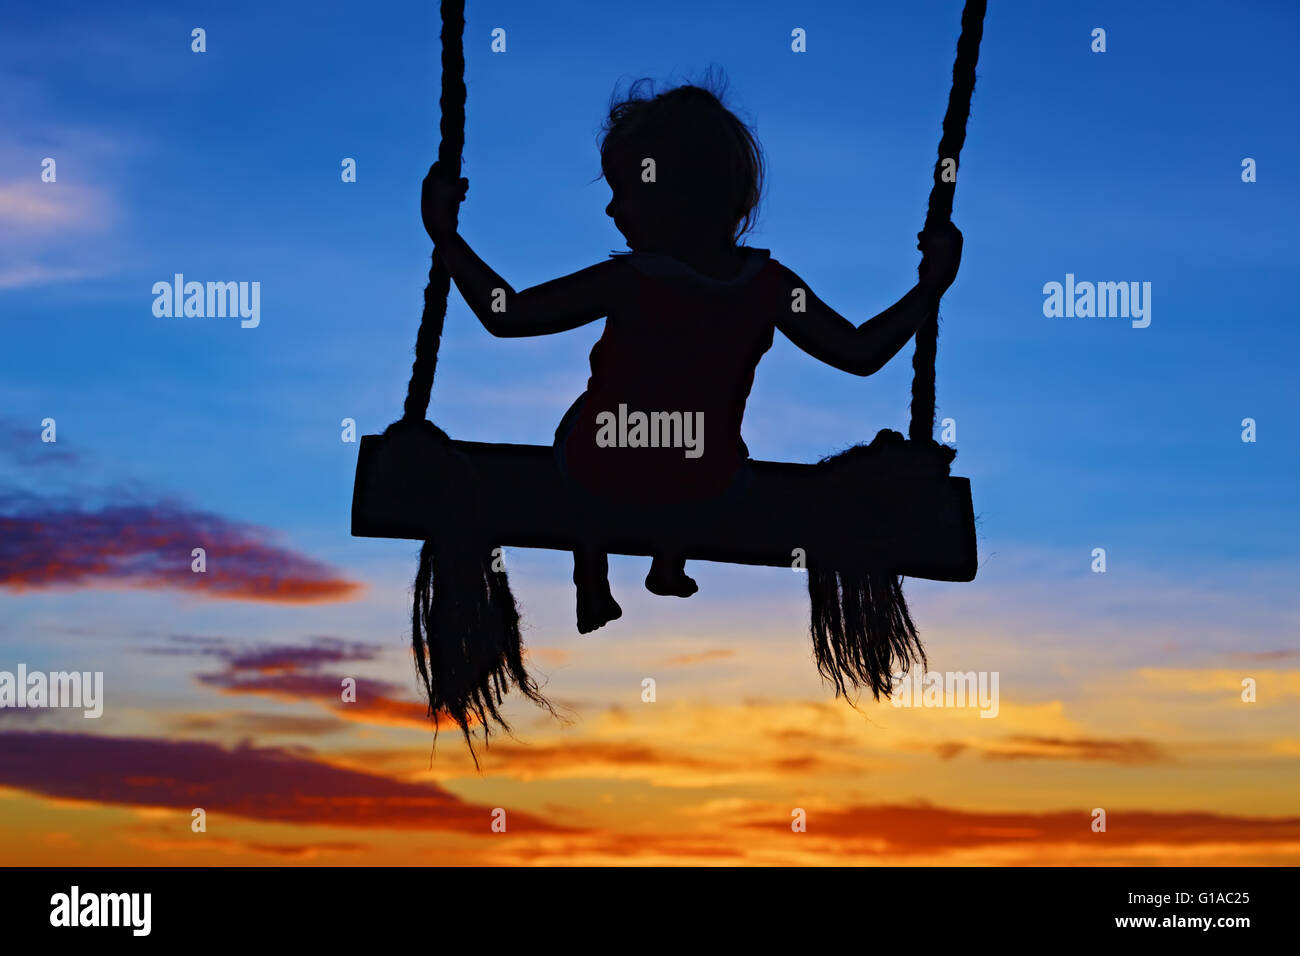 Black silhouette of baby girl flying high with fun on rope swing on blue orange sunset sky background. - Stock Image